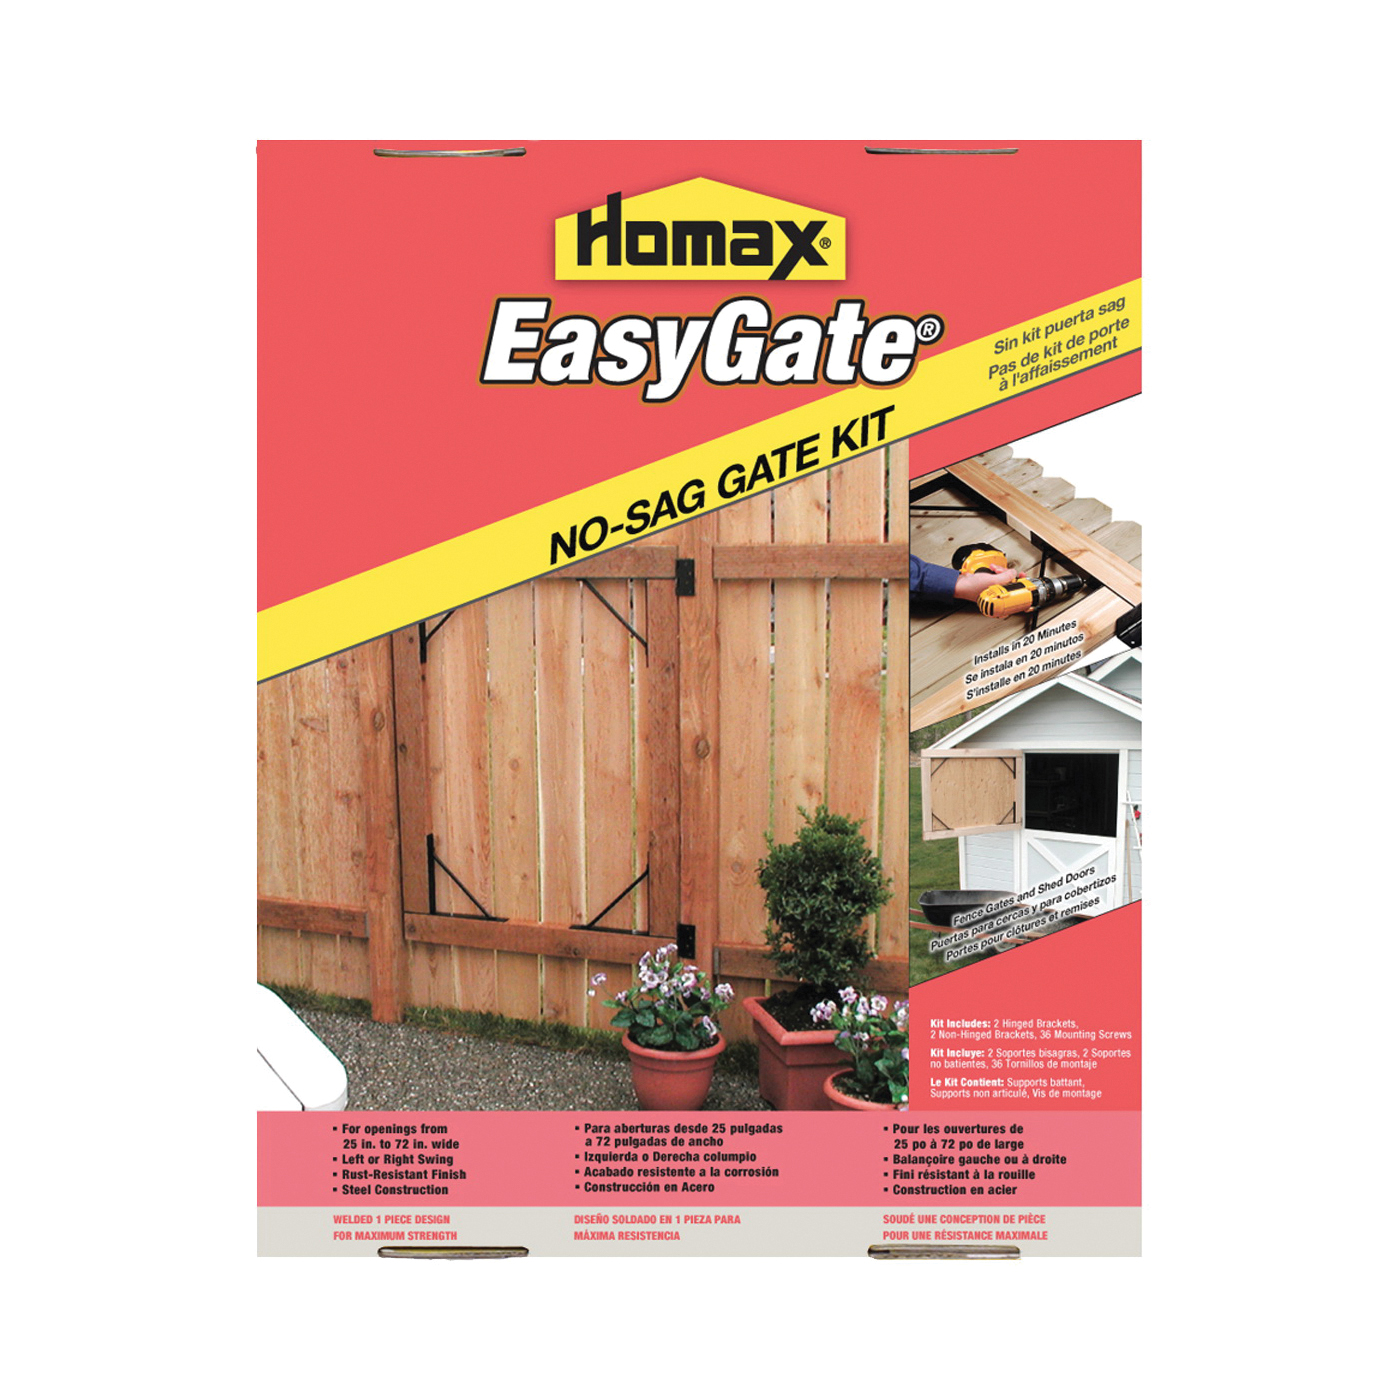 Picture of Homax 80099 Gate Kit, Steel, Black, Powder-Coated, For: Fence, Driveway, Corral, Shed, Deck Gates